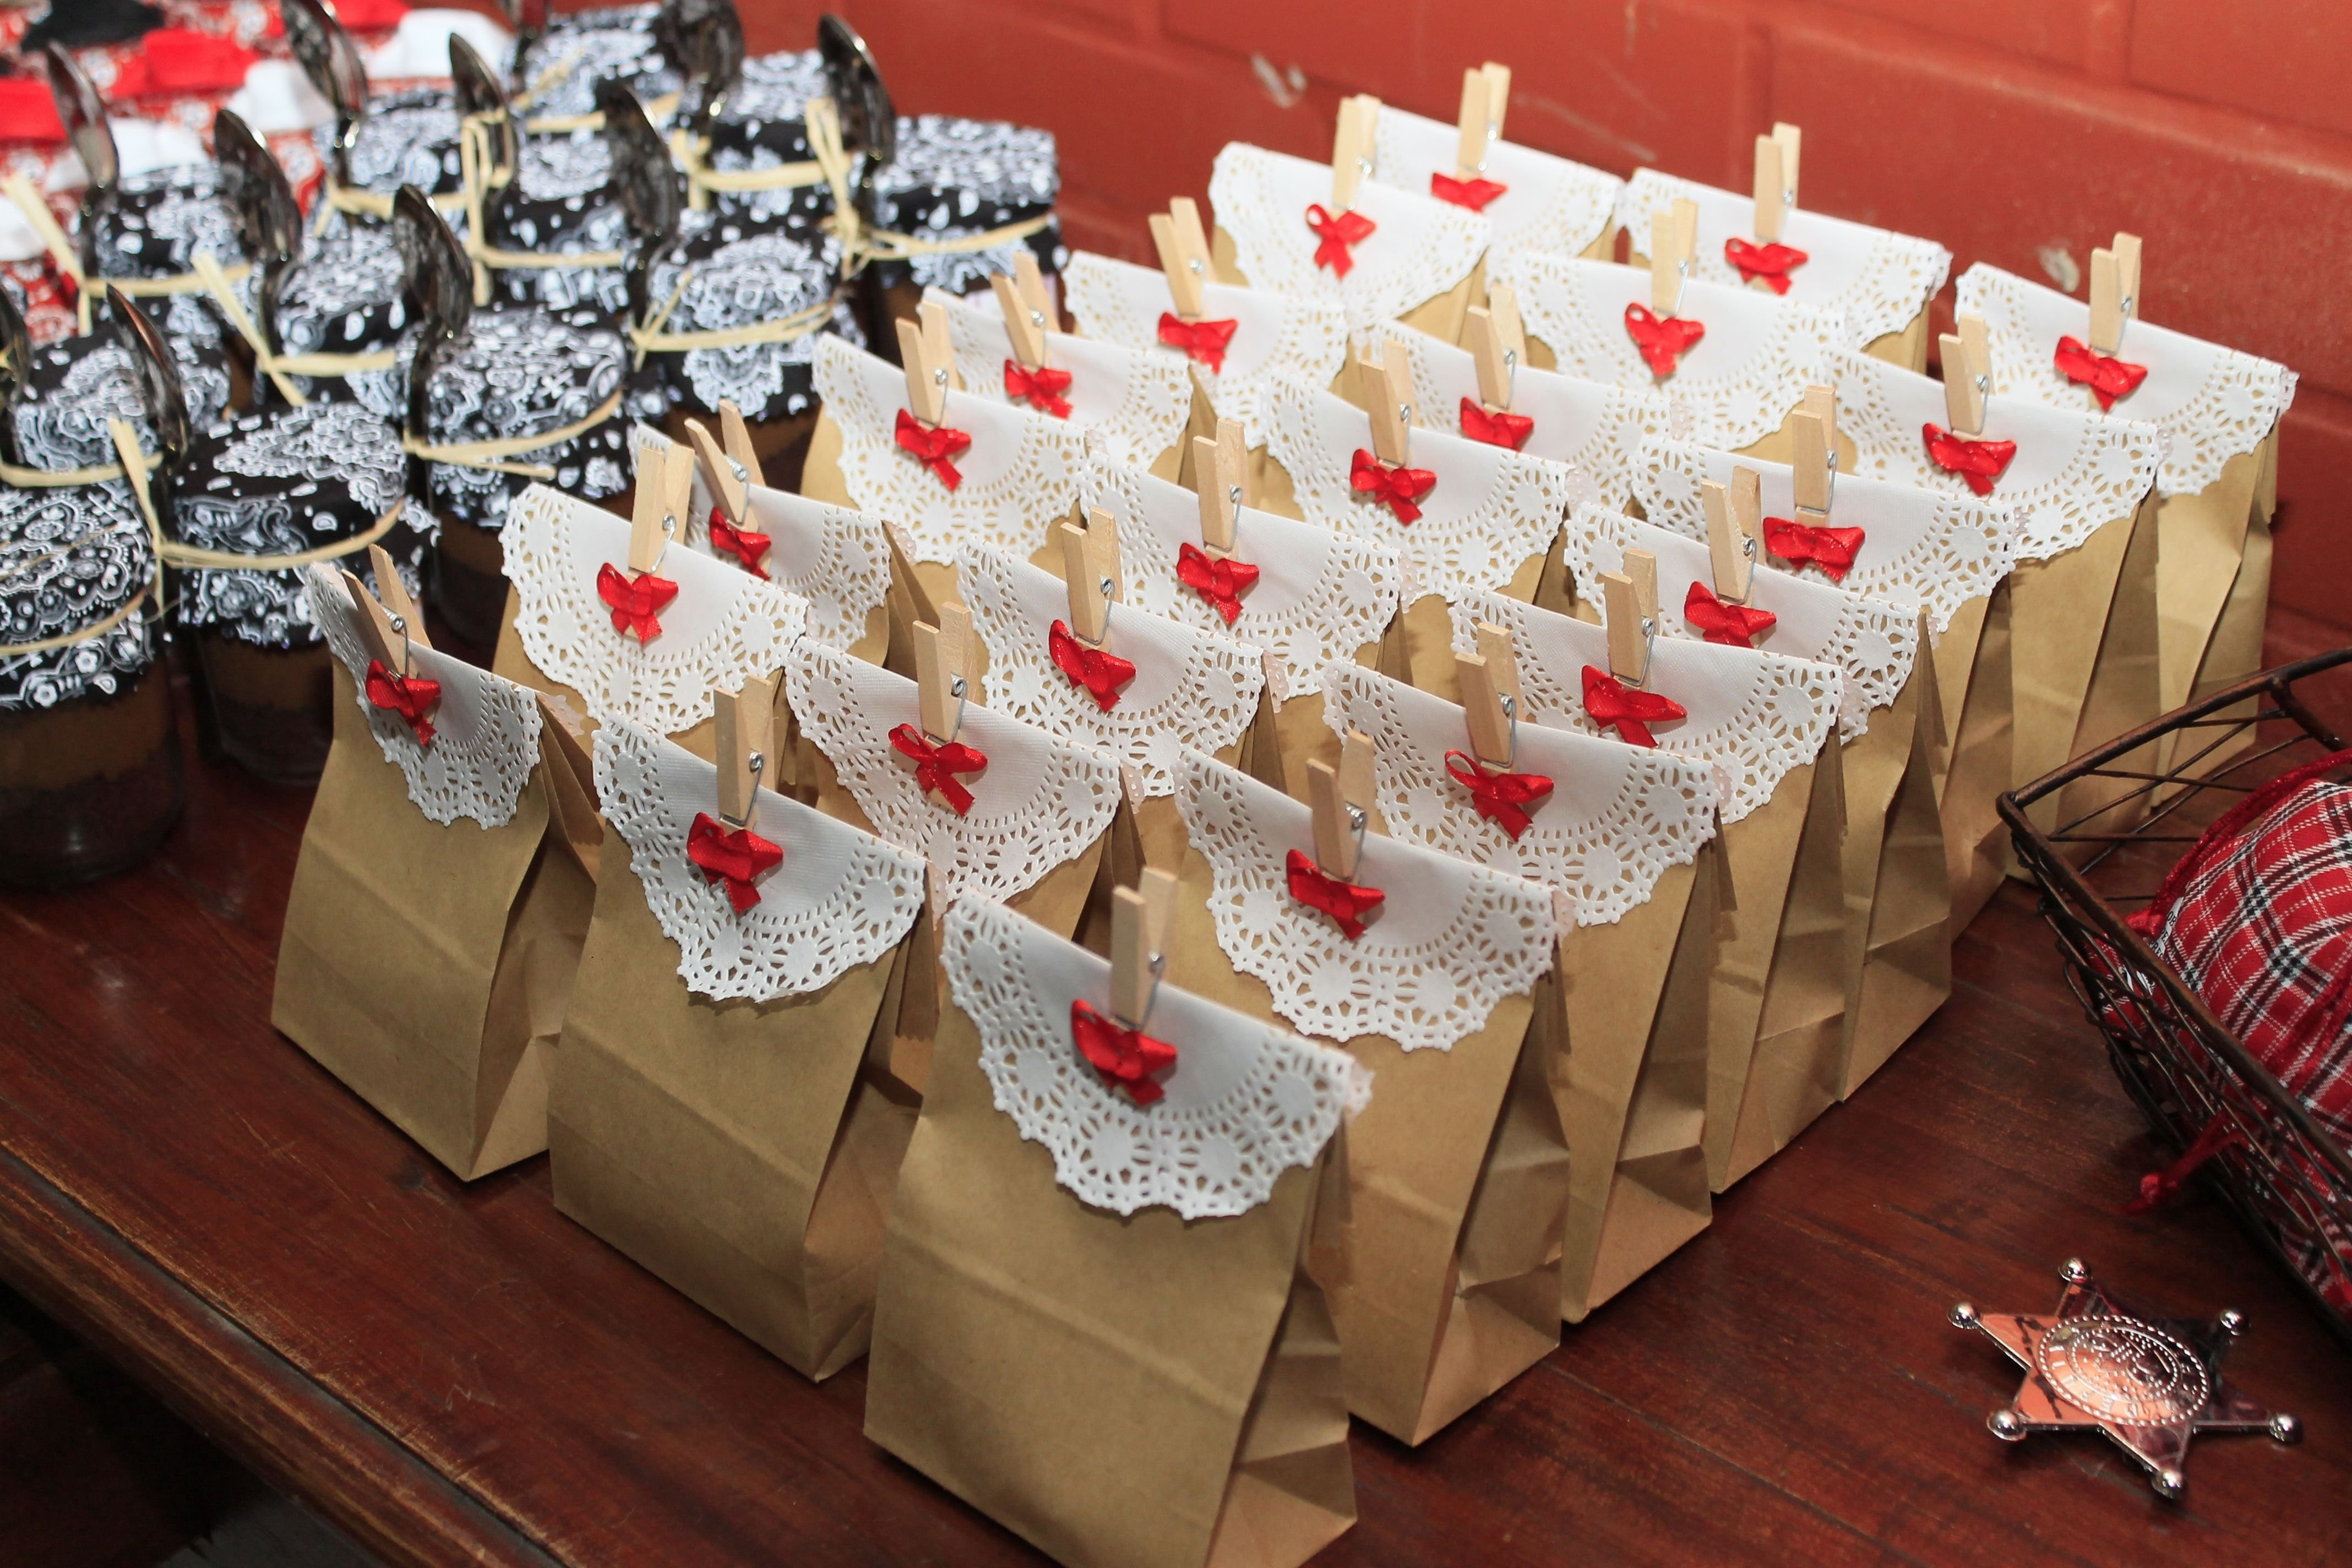 10 Lovable Gift Bag Ideas For Adults goodie bags adults deserve them too my country birthday 2 2020